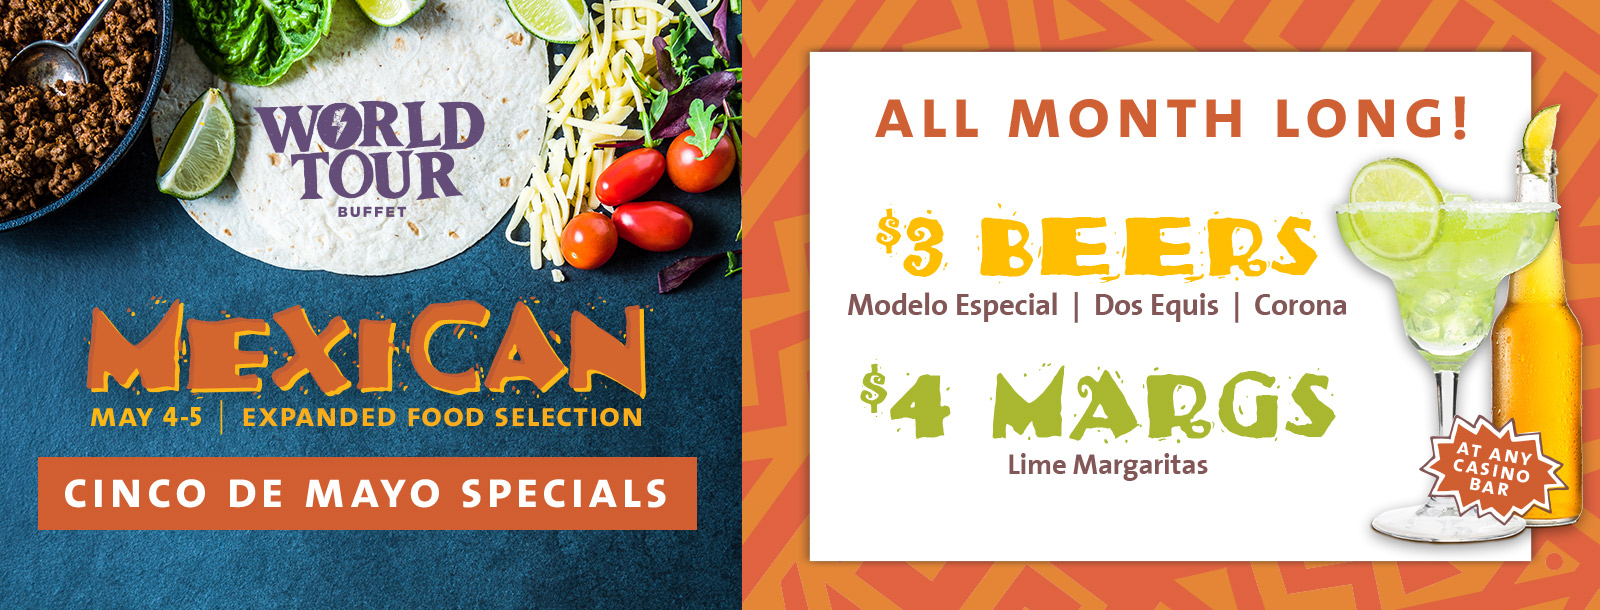 world tour buffet cinco de mayo specials